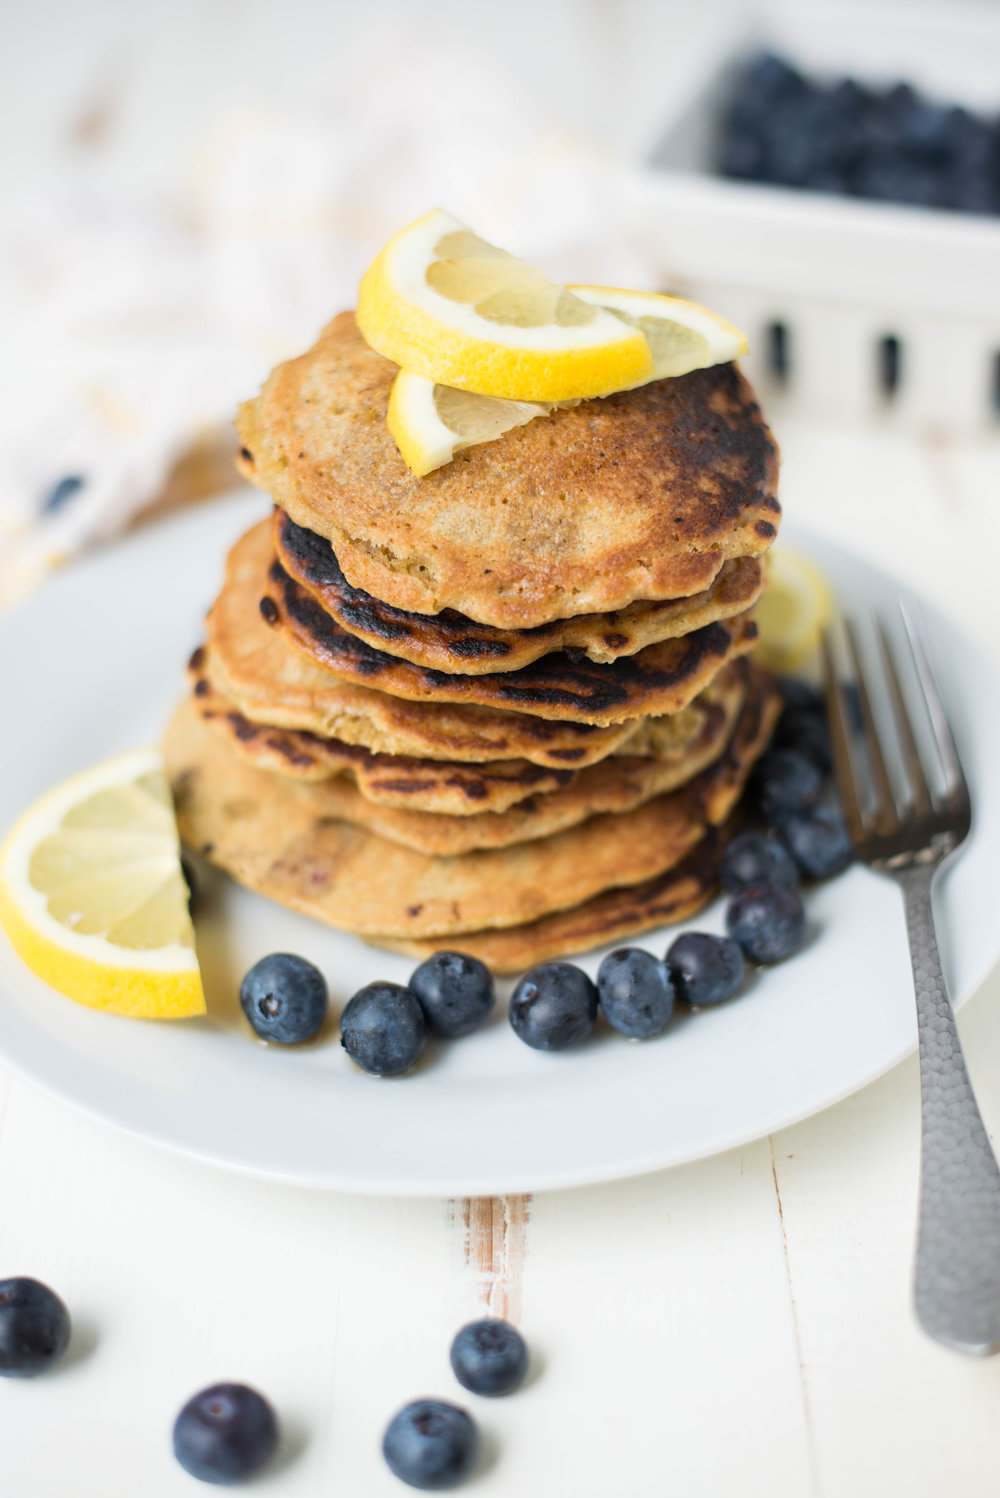 Tender, lightly sweet, and bursting with berries, One-Bowl Blueberry Lemon Pancakes are simple to whip up and make for the perfect, healthy weekend treat.